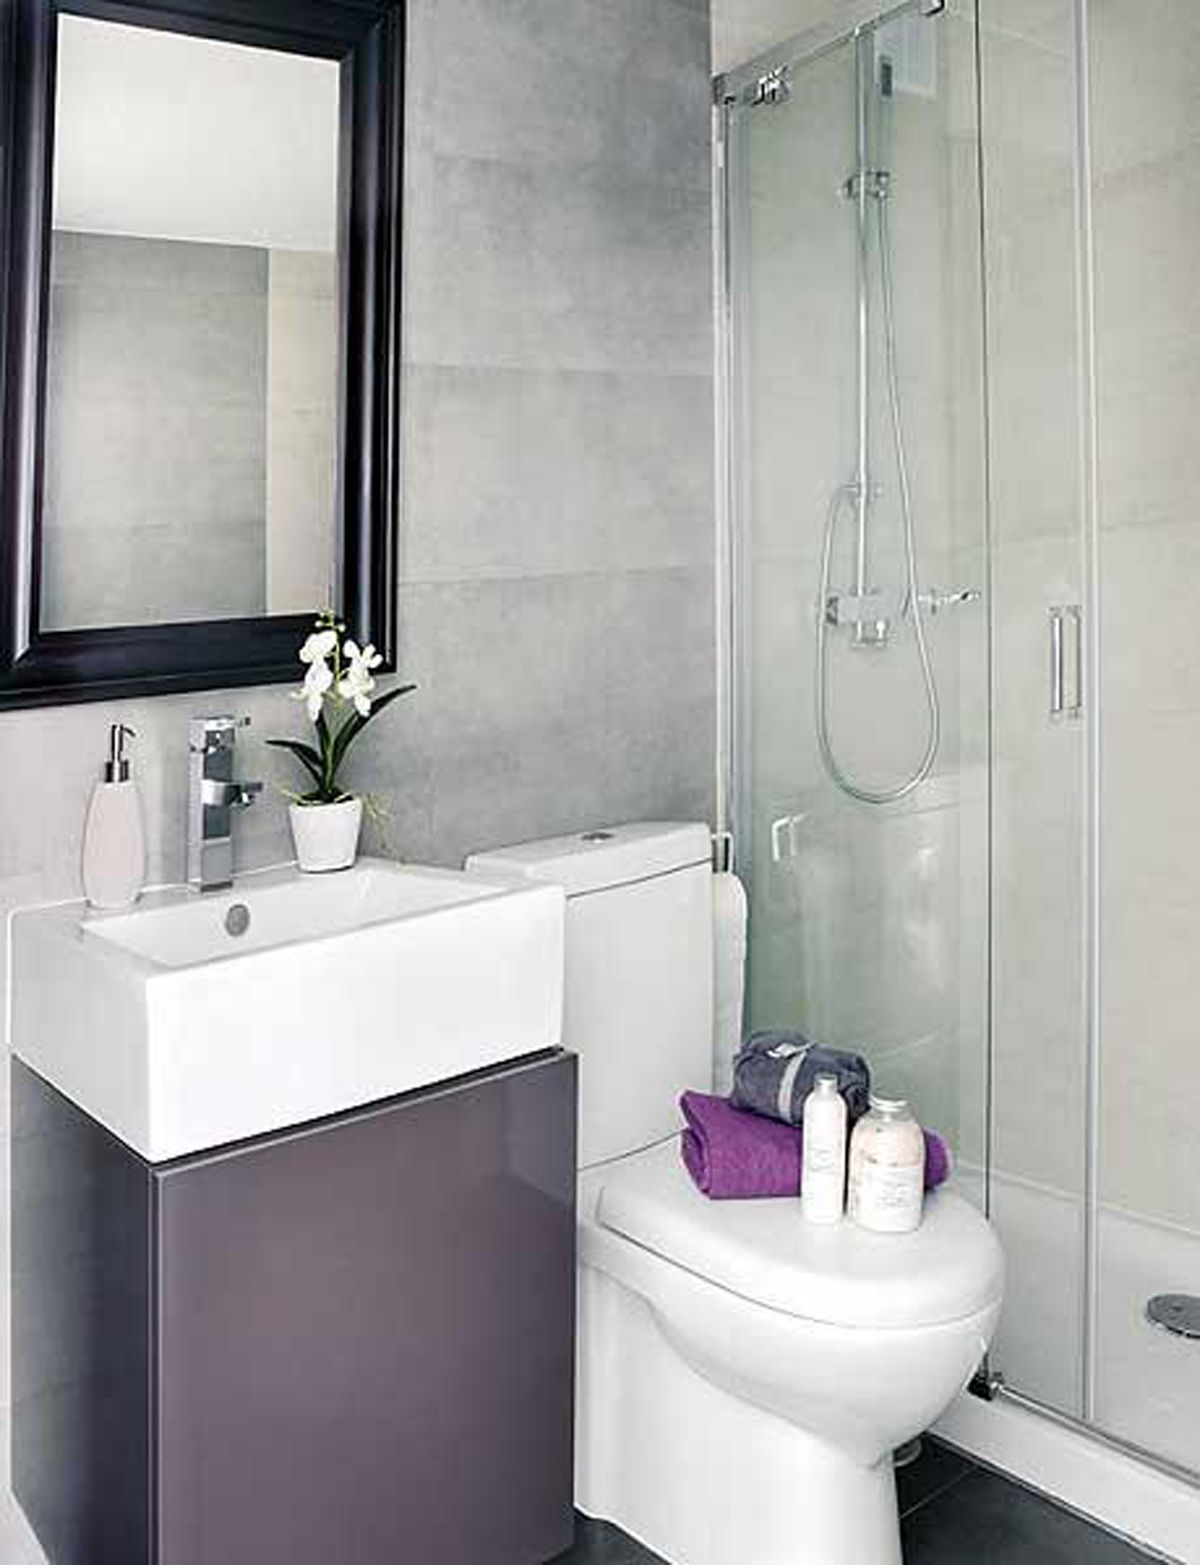 Apartment bathroom ideas - Intrinsic Interior Design Applied In Small Apartment Architecture Luxtica Comluxtica Com